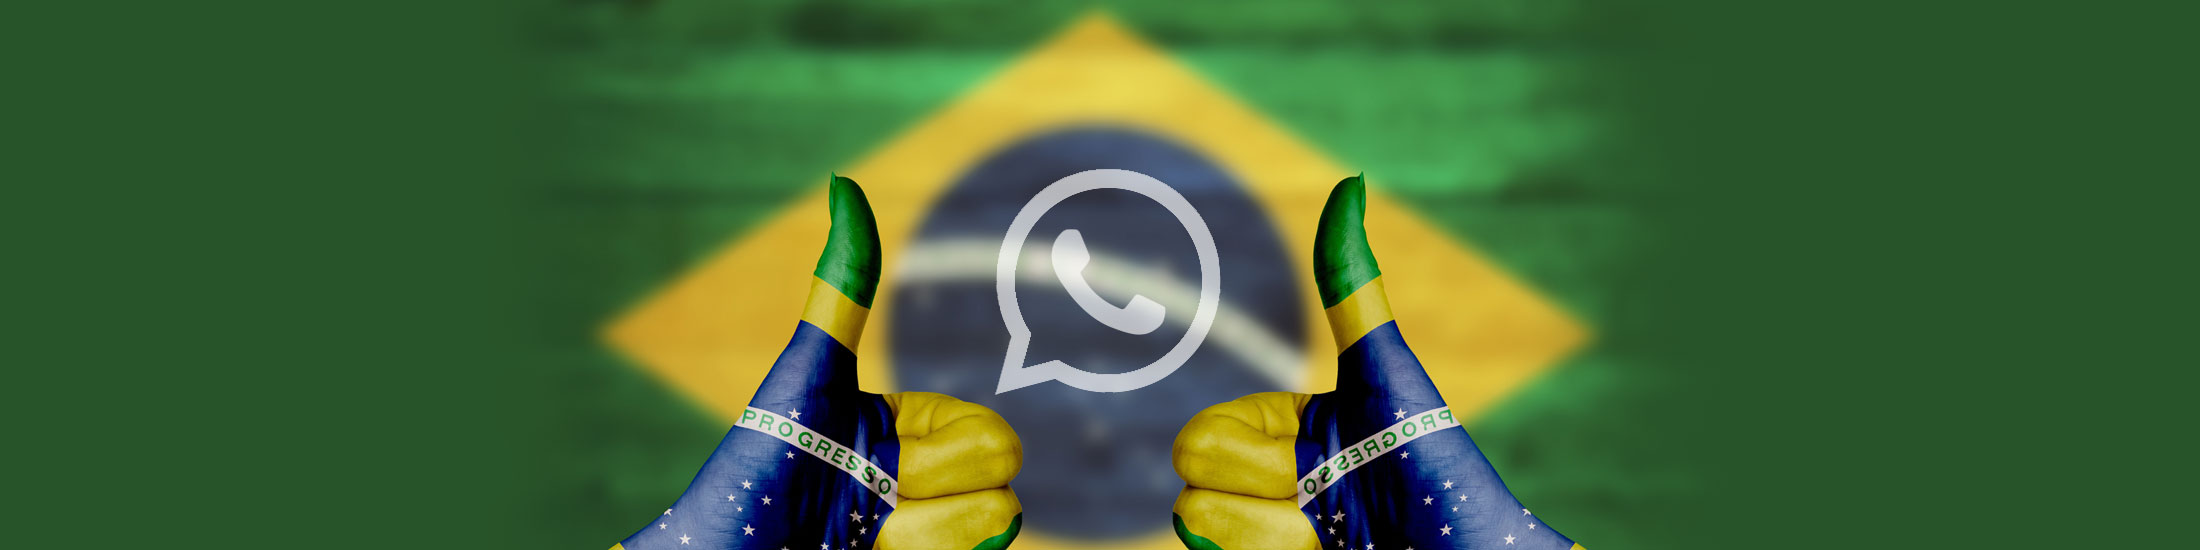 WhatsApp Taps Brazil for First Nationwide Rollout of Payments